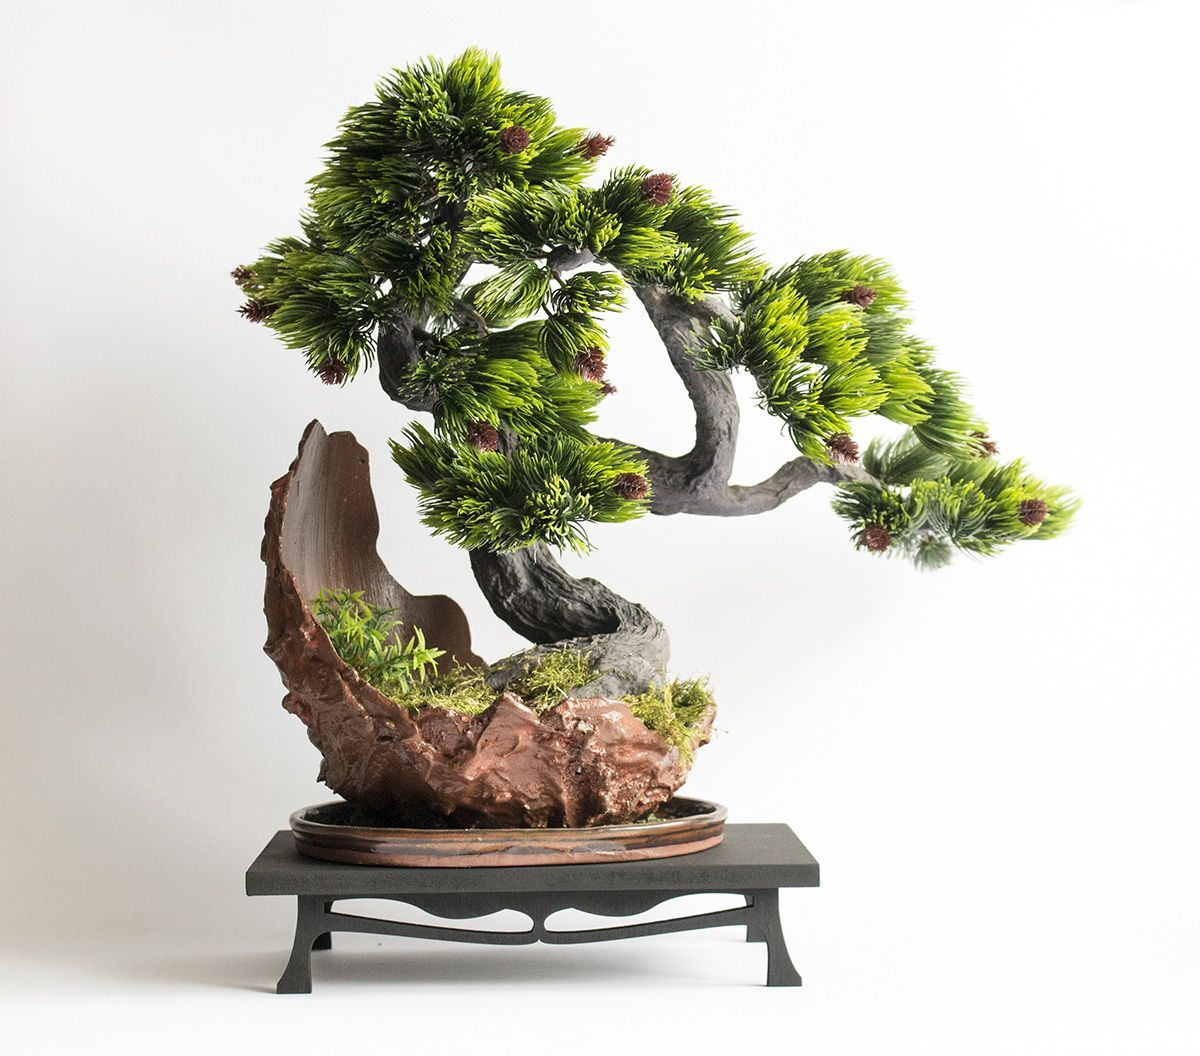 Bonsai Zokei Made In The Style Of Bankan Bonsai Art Bonsai Plants Juniper Bonsai